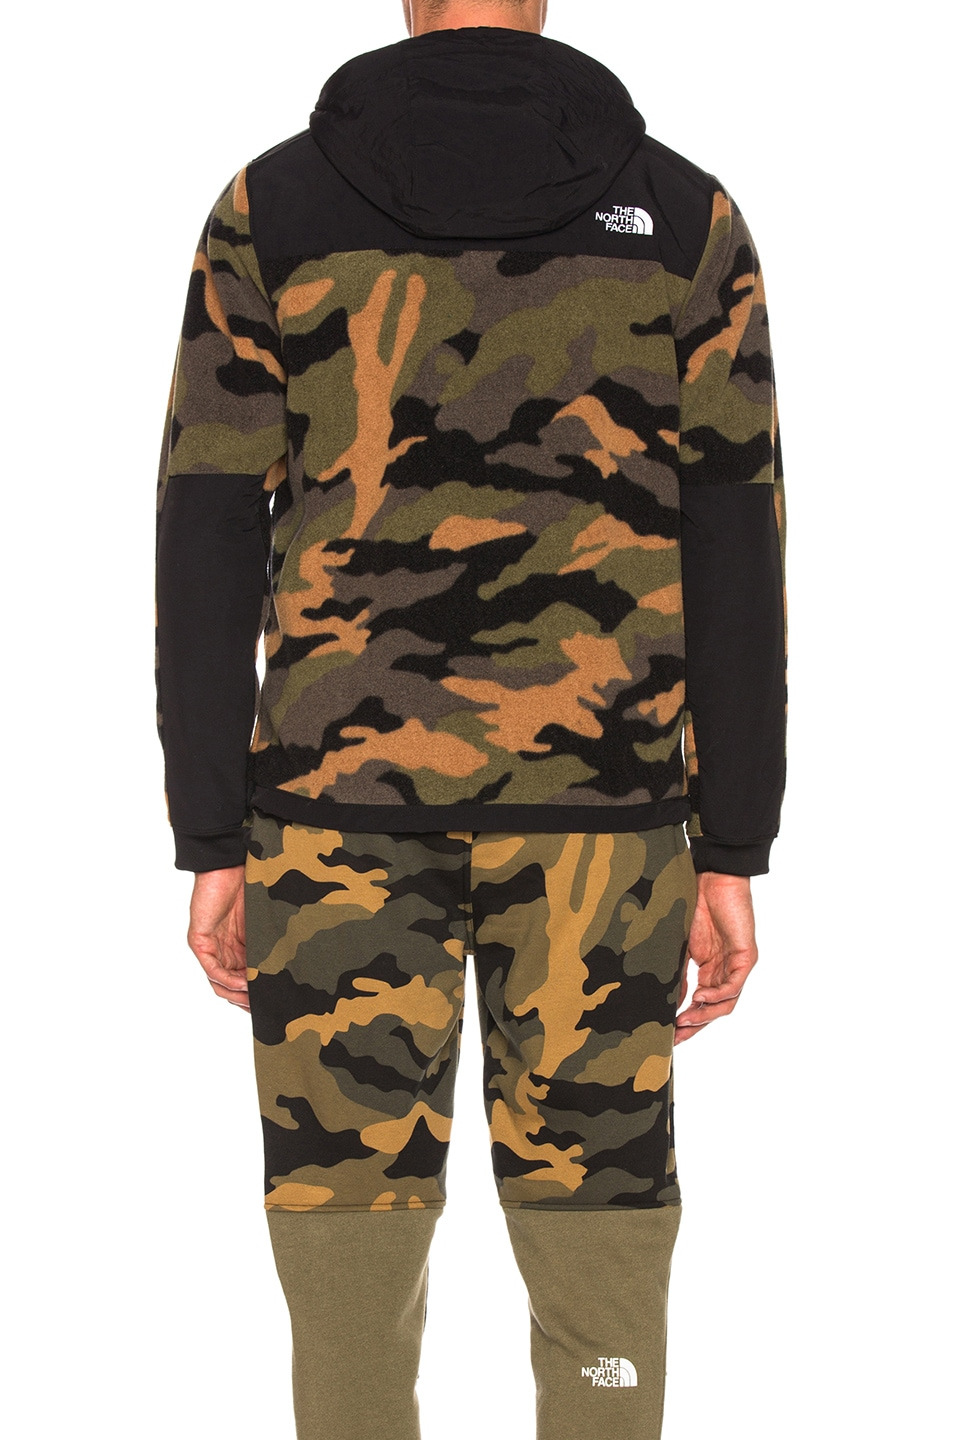 Image 4 of The North Face Denali Anorak in Burnt Olive Green Woods Camo Print